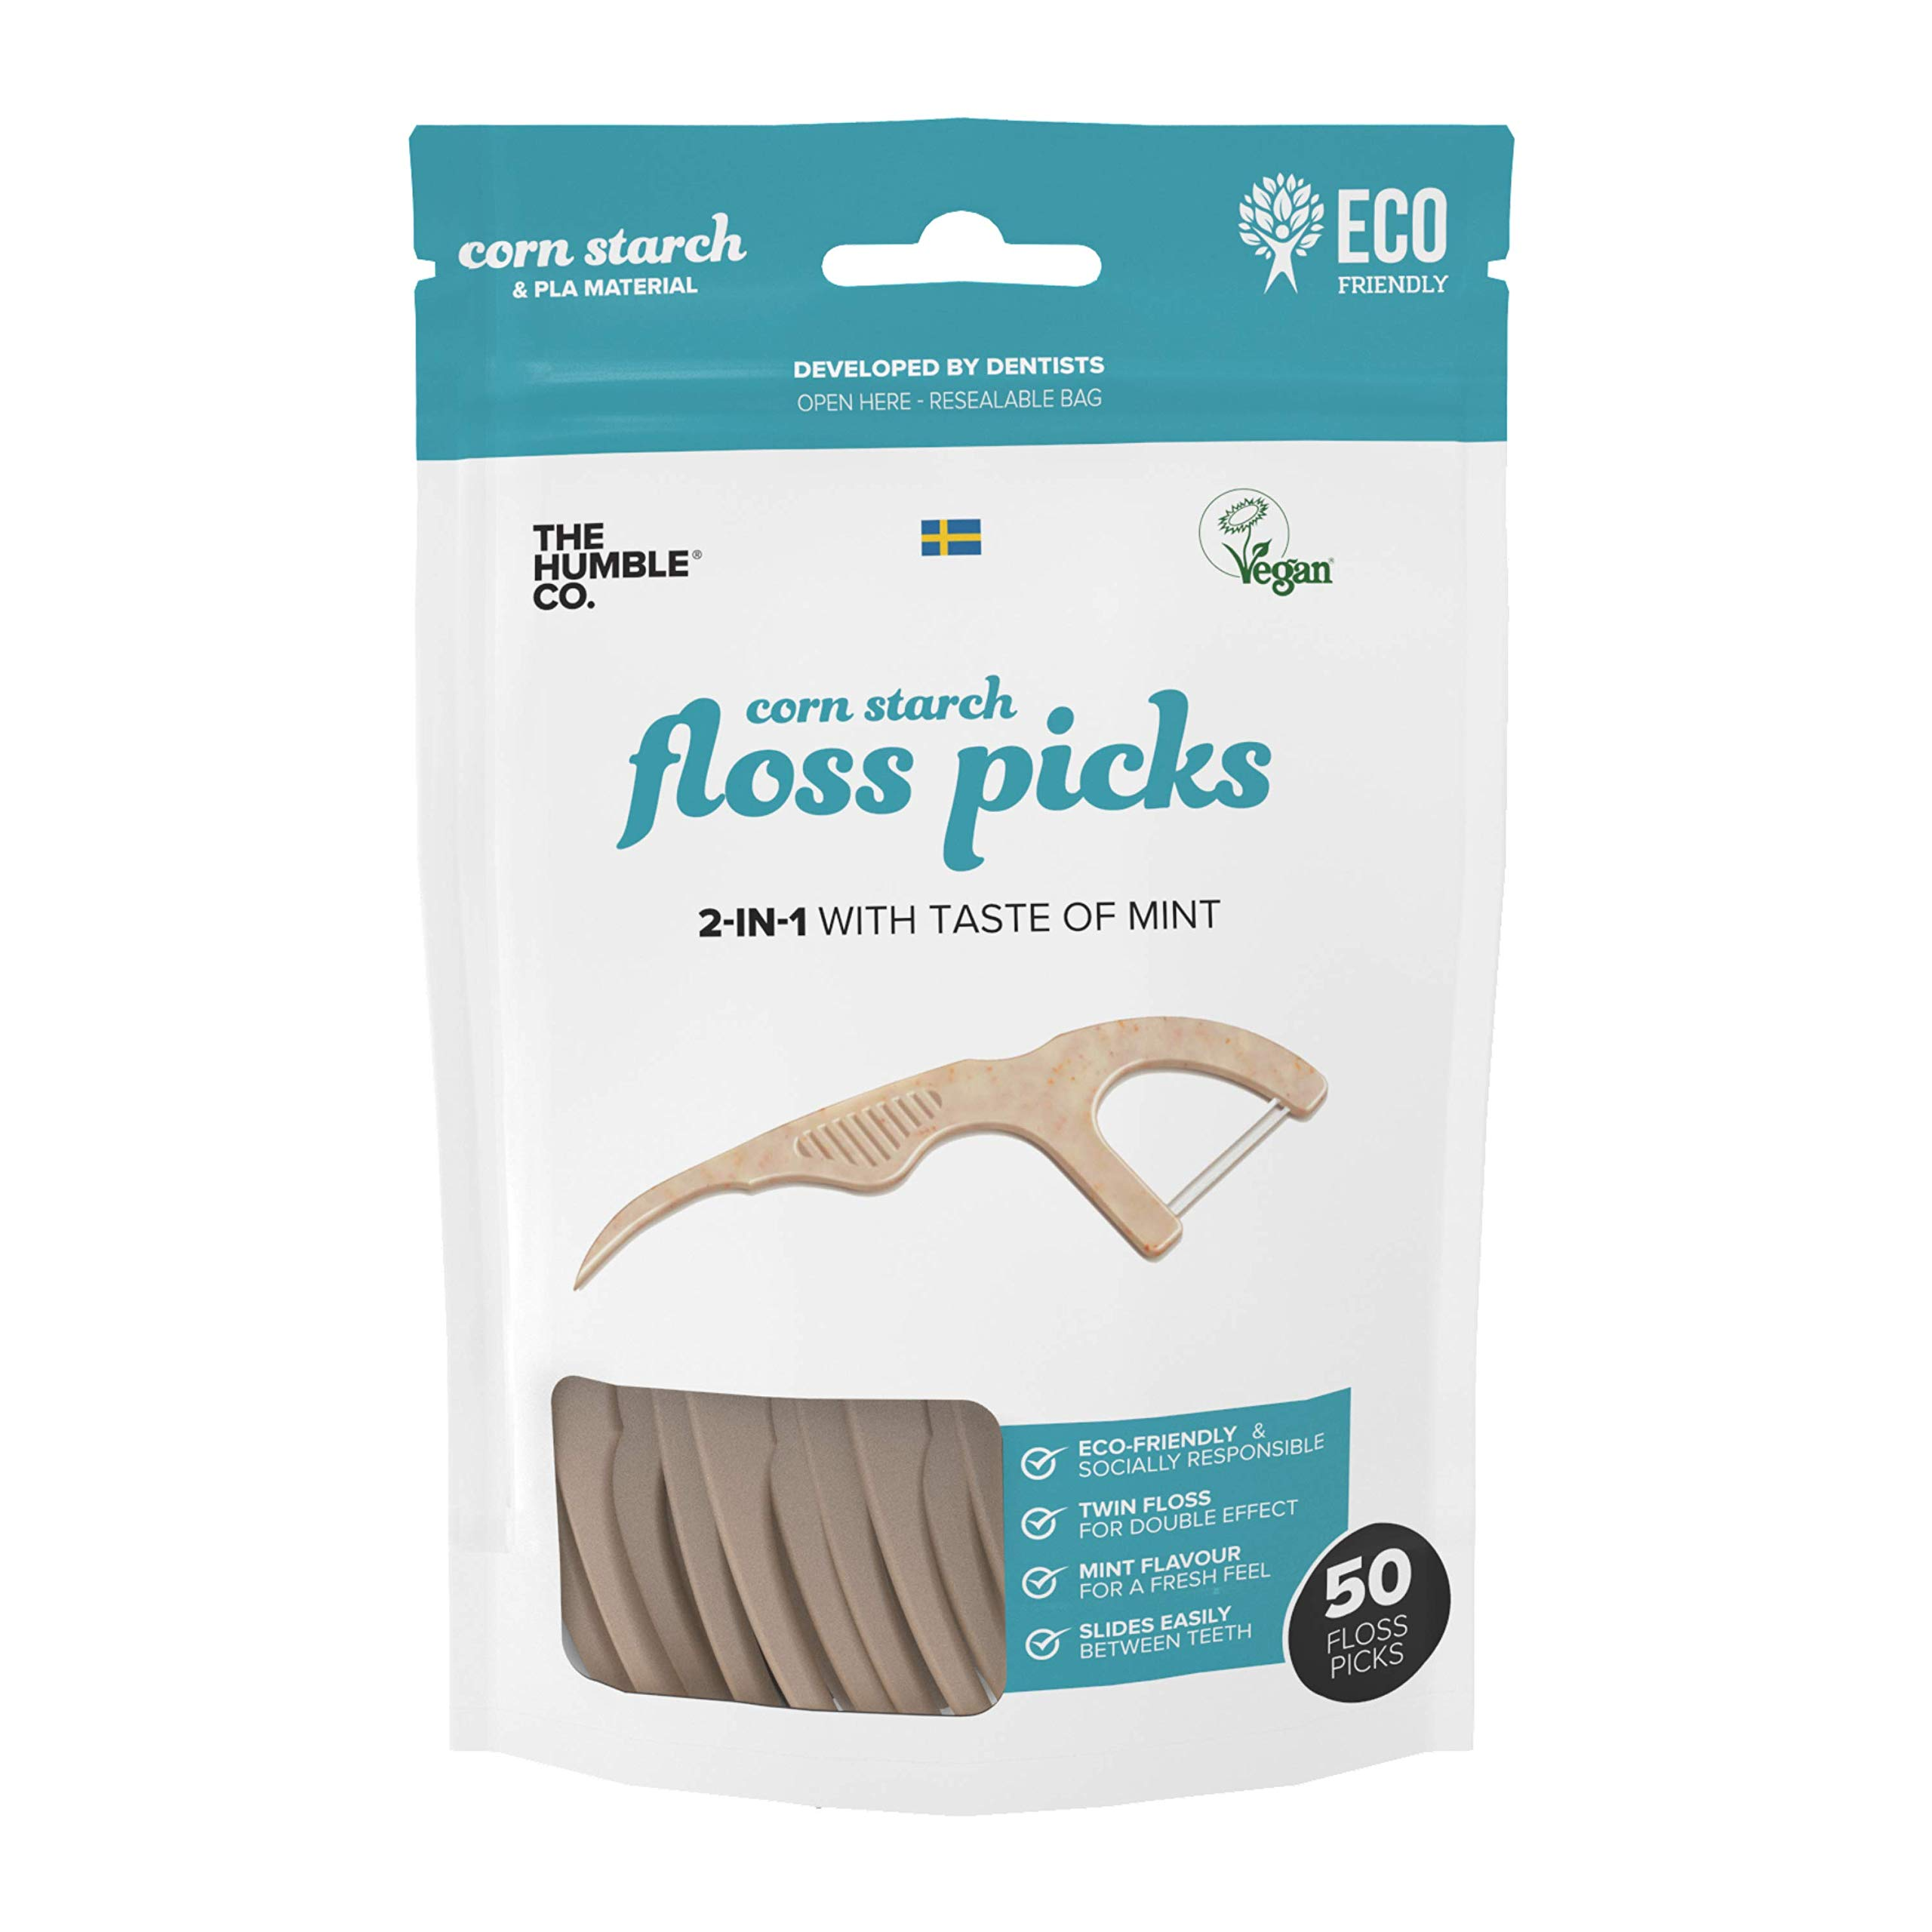 The Humble Co. Natural Dental Floss Picks (200 count) - Vegan, Eco Friendly, Sustainable Flossers for Zero Waste Oral Care. Helps Remove Plaque and Gives a Fresh Feel (4 packs of Mint)